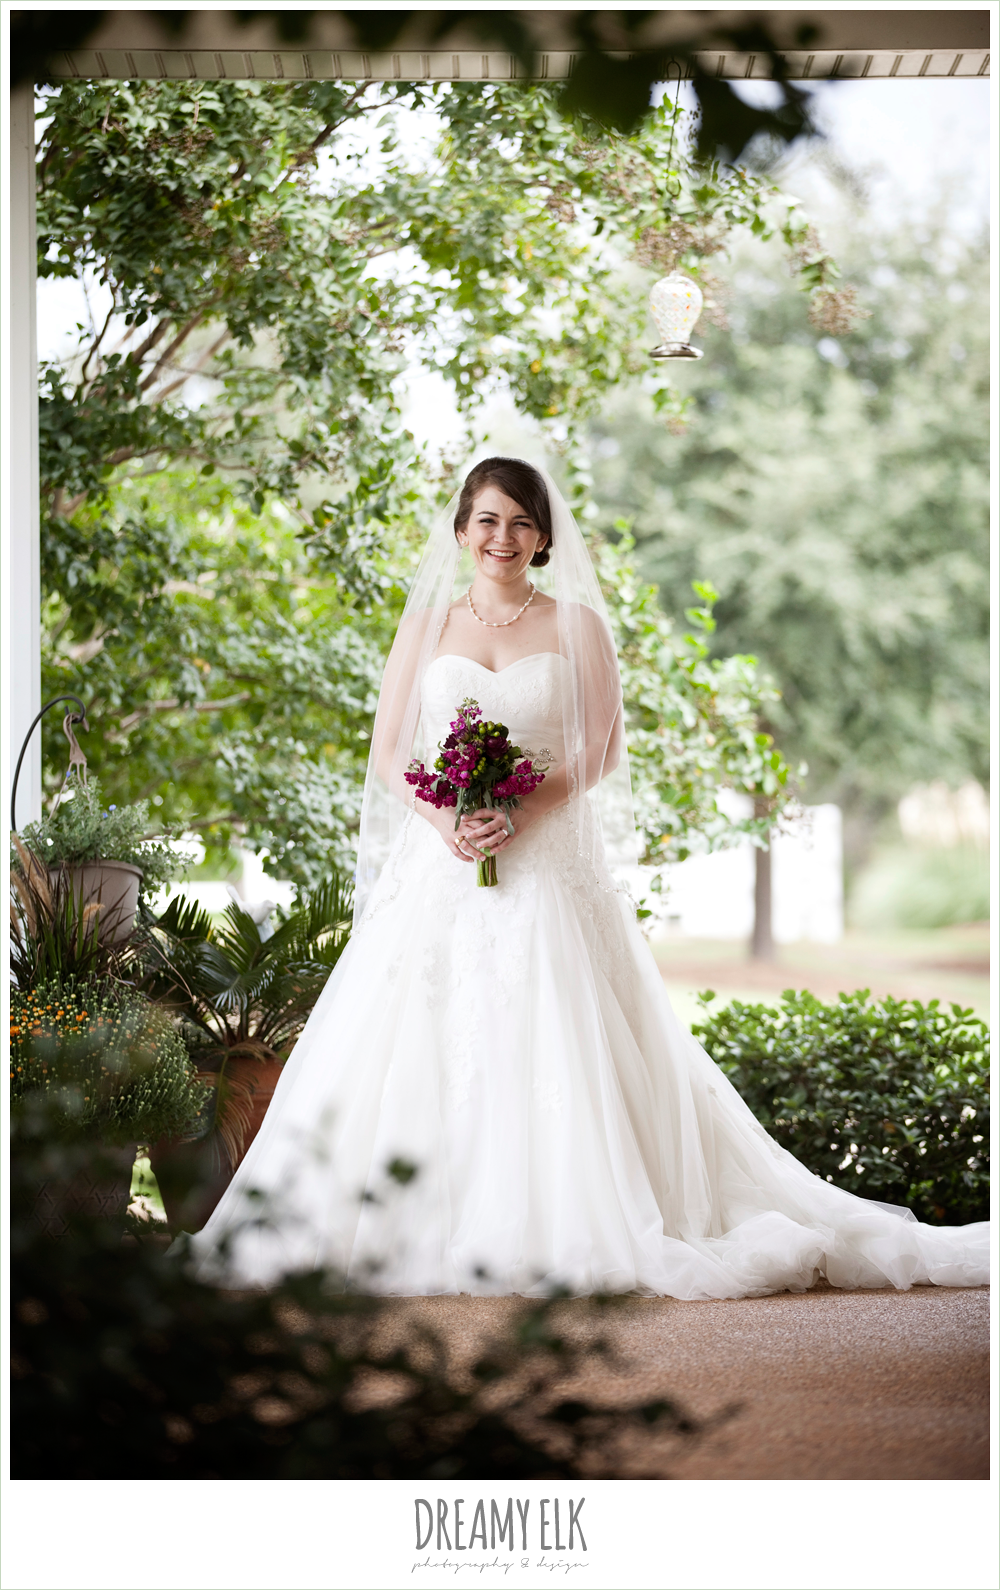 laura, bridal photo contest, inn at quarry ridge